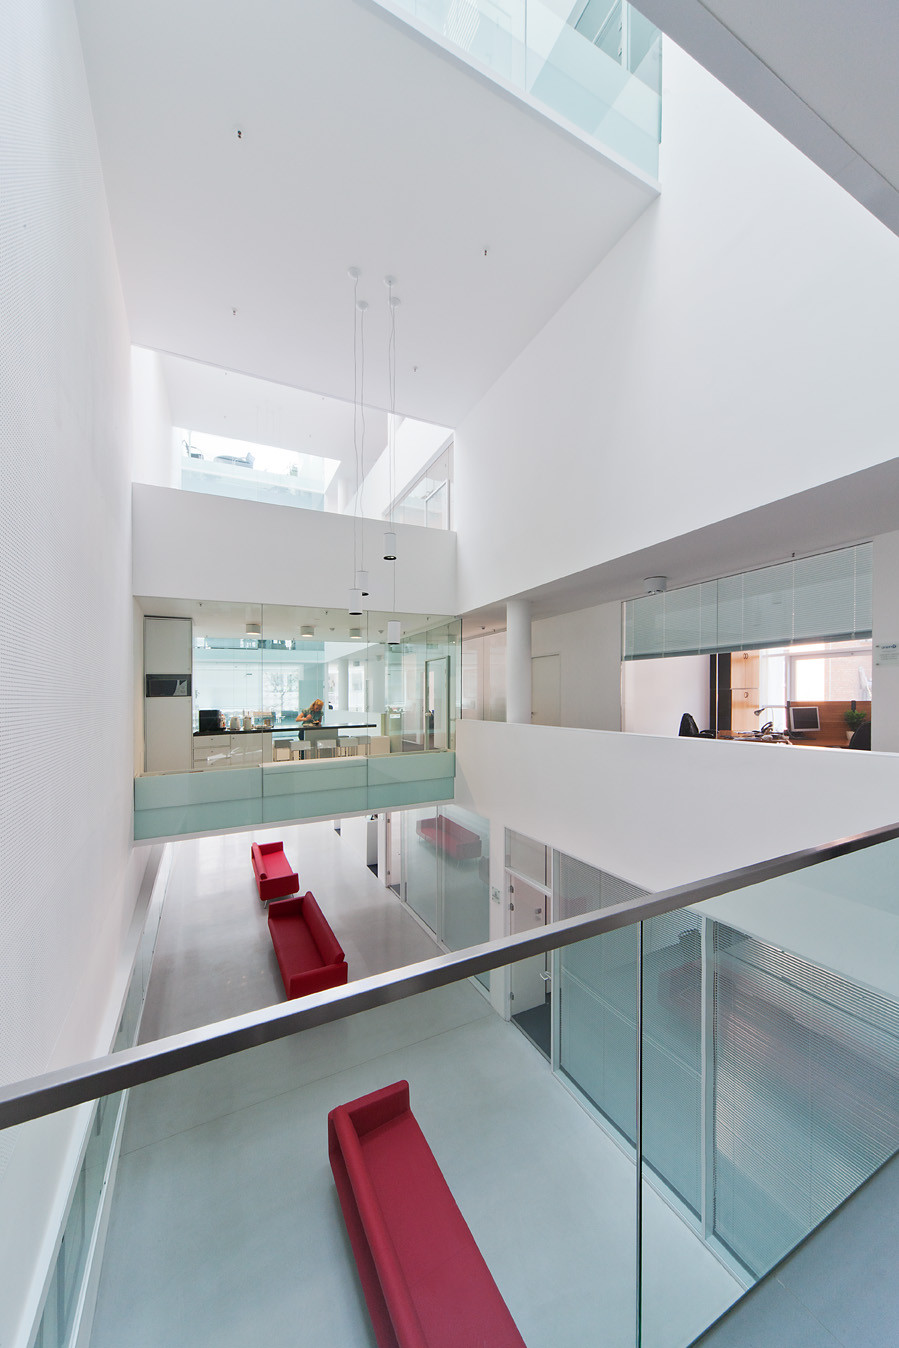 Gallery of vibrant geometry 3h architecture ltd 7 for Architect ltd